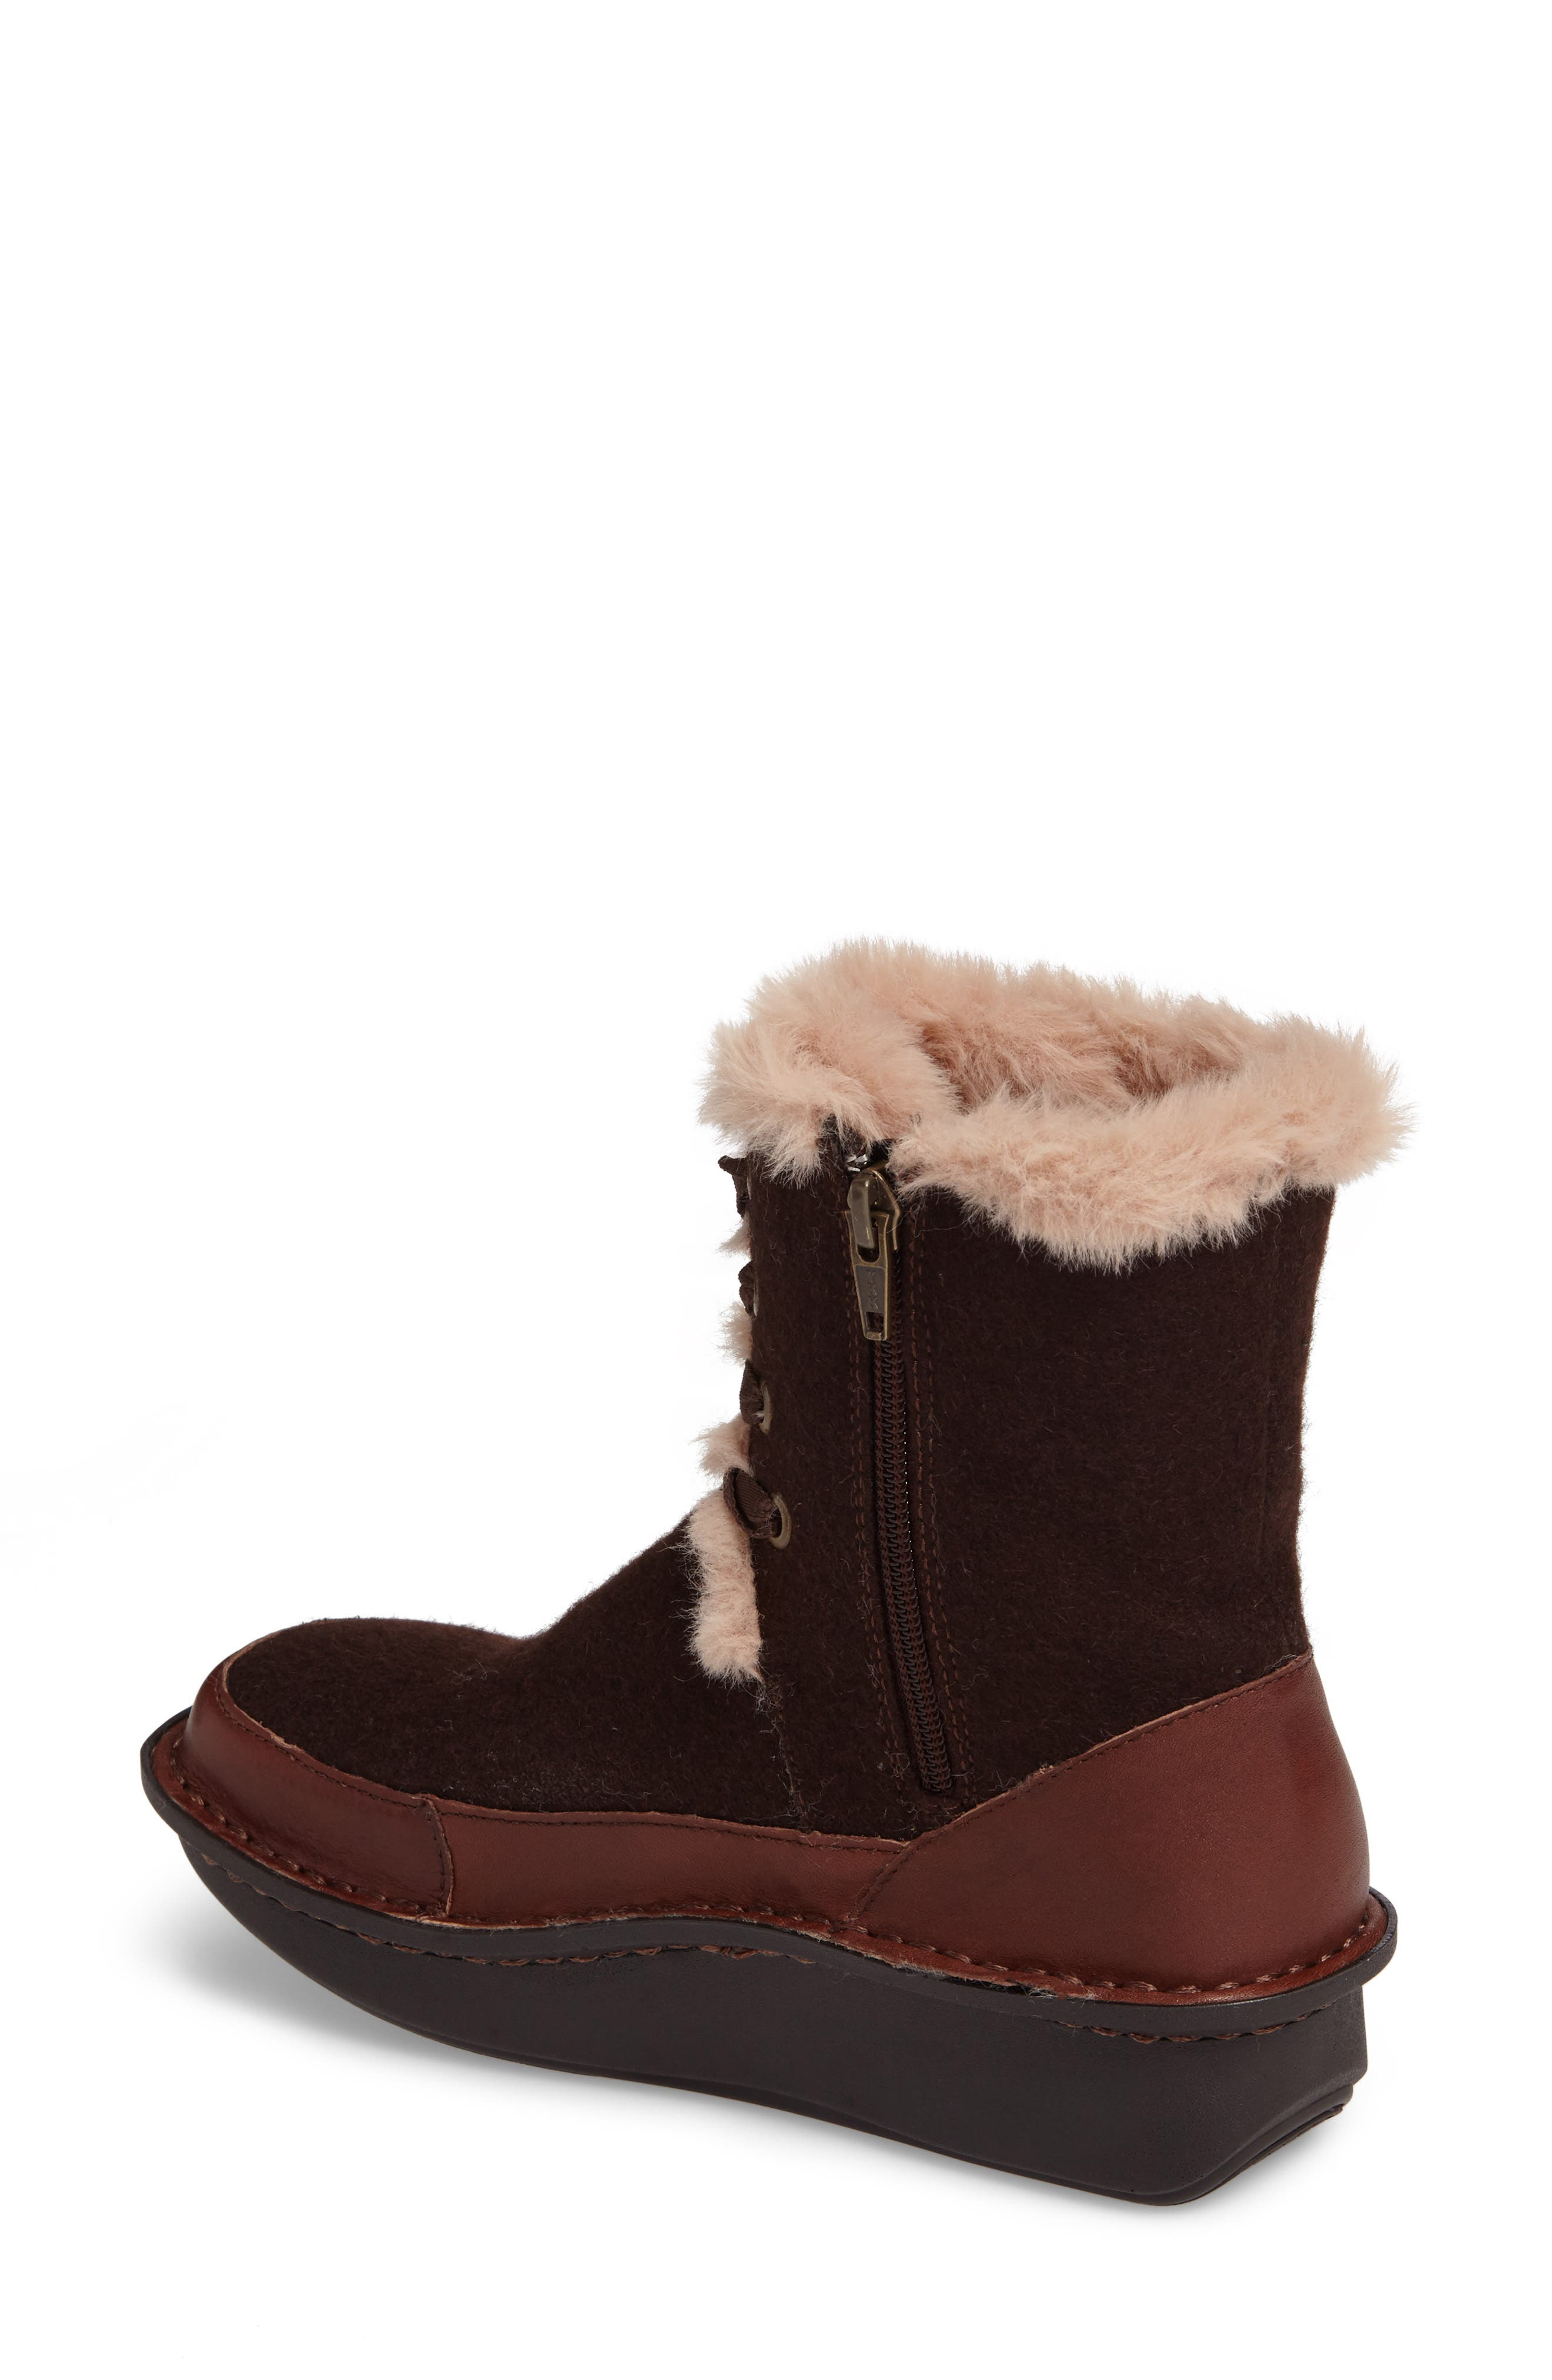 Twisp Lace-Up Boot with Faux Fur Lining,                             Alternate thumbnail 5, color,